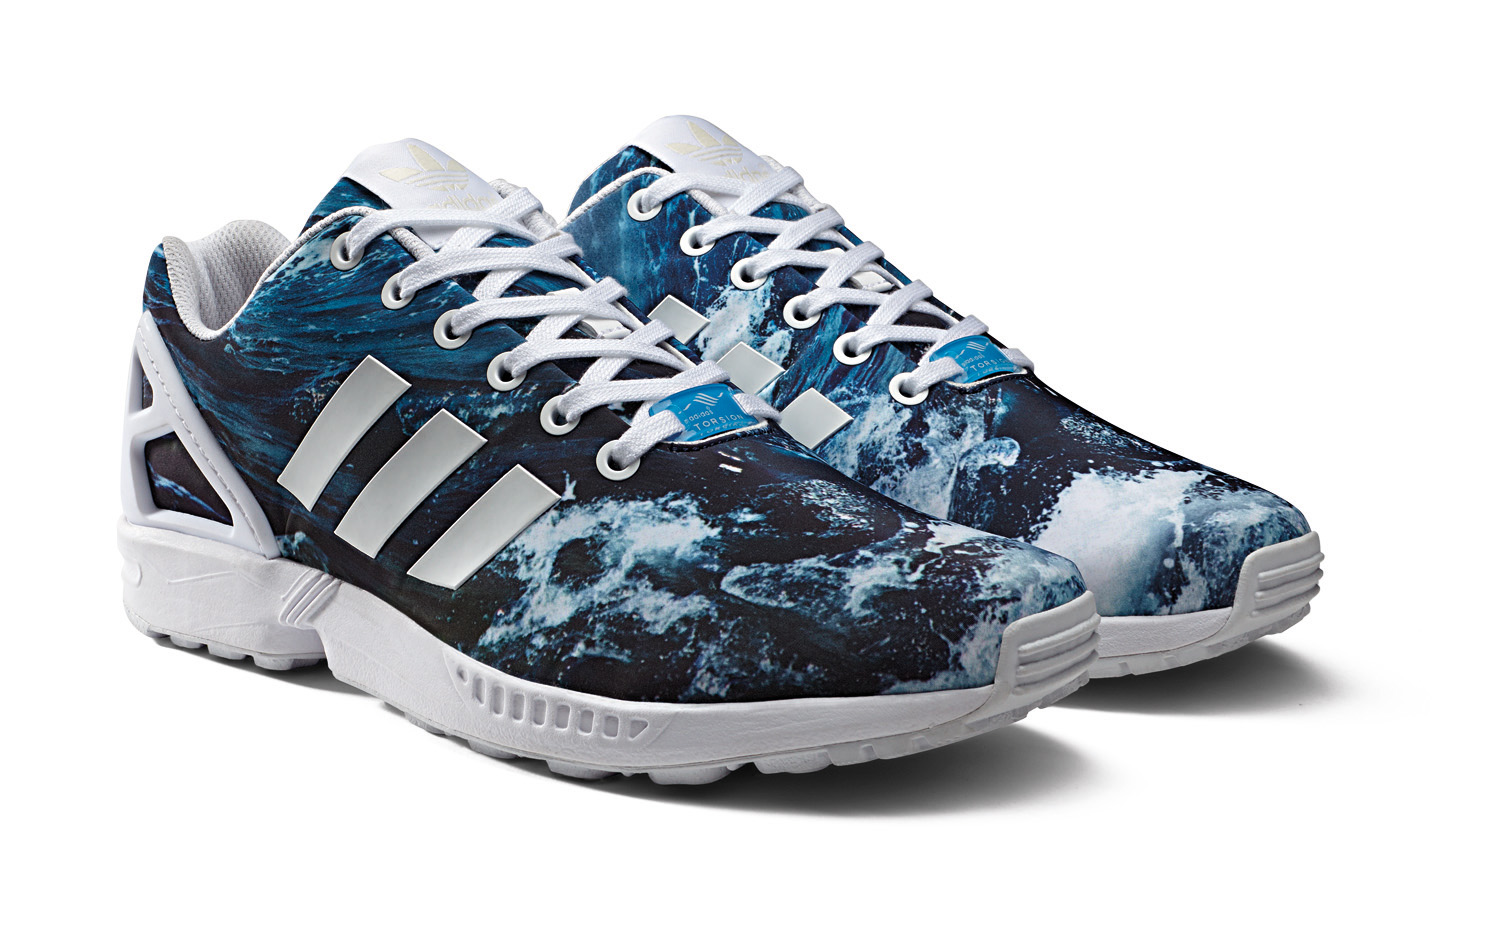 adidas ZX FLUX Photo Print Pack 7